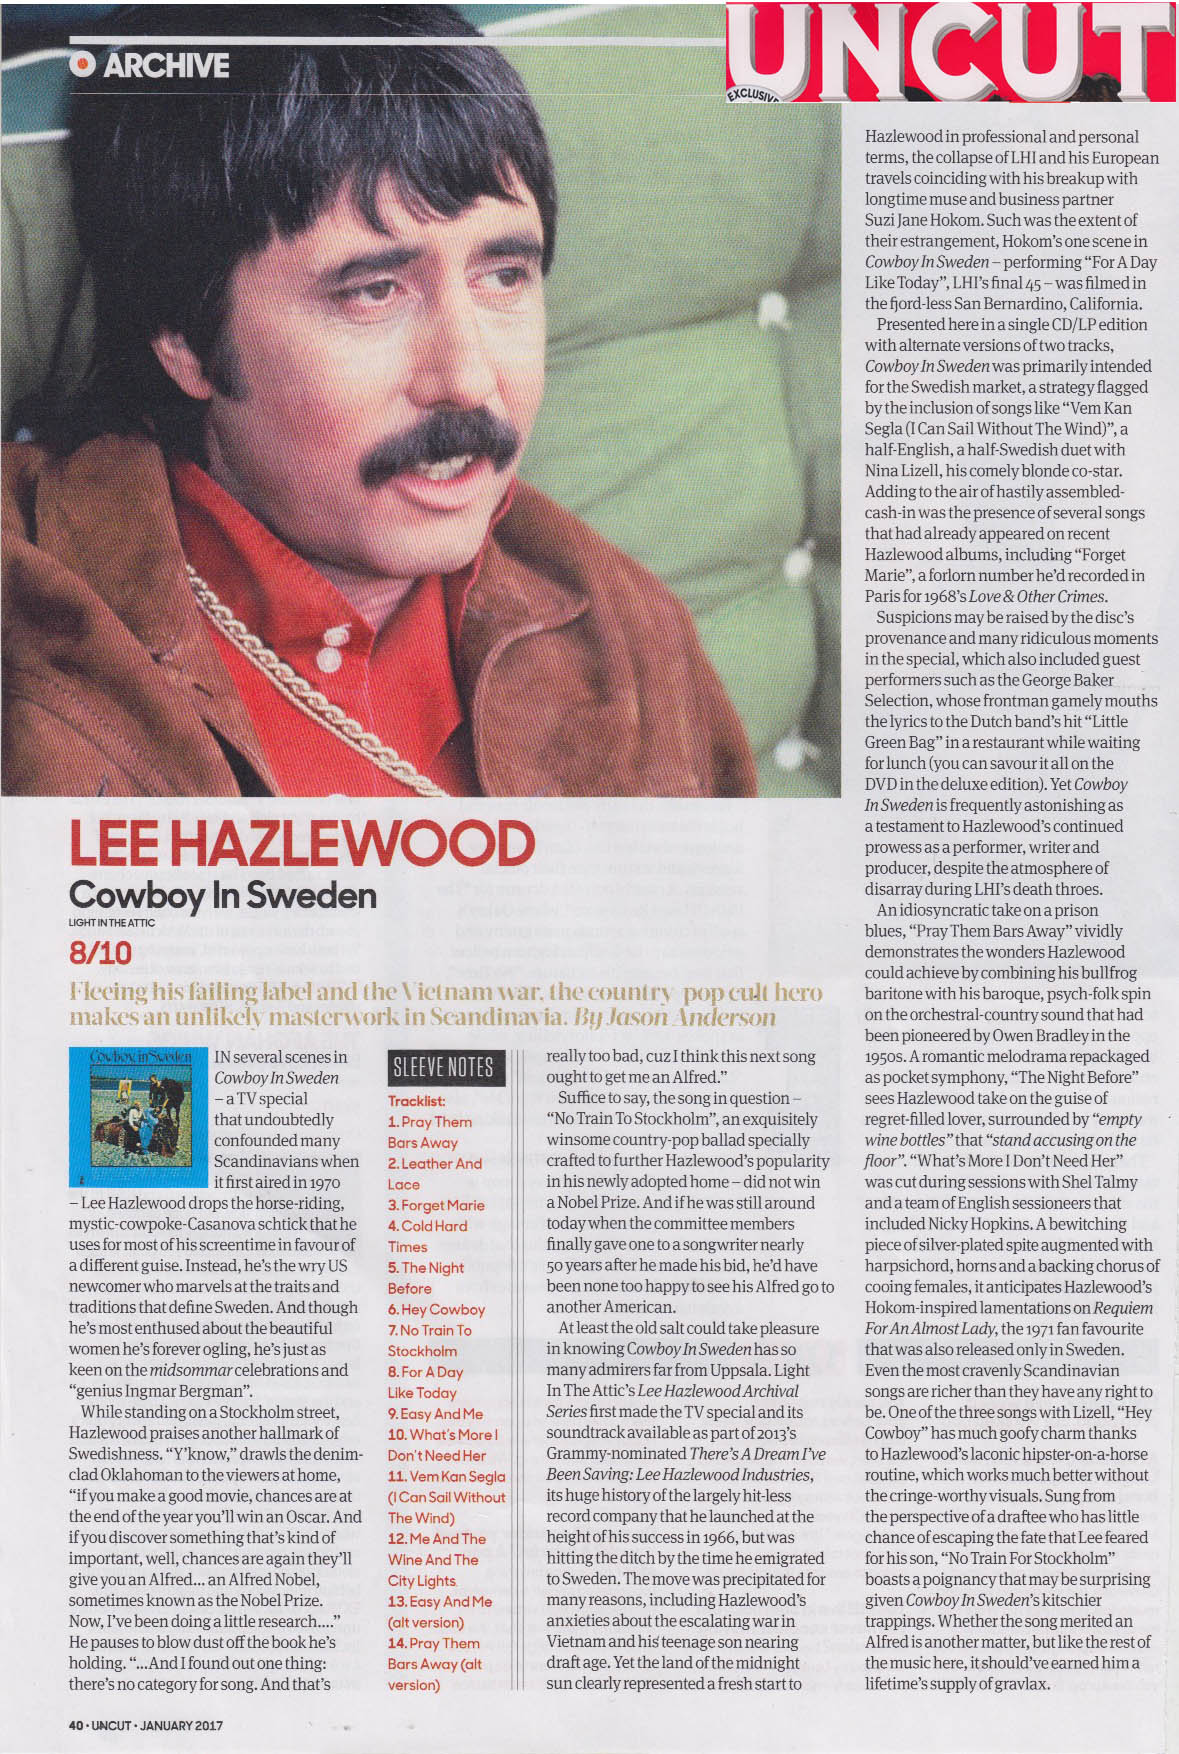 Lee Hazlewood - Cowboy In Sweden.  Uncut , Jan. 2017